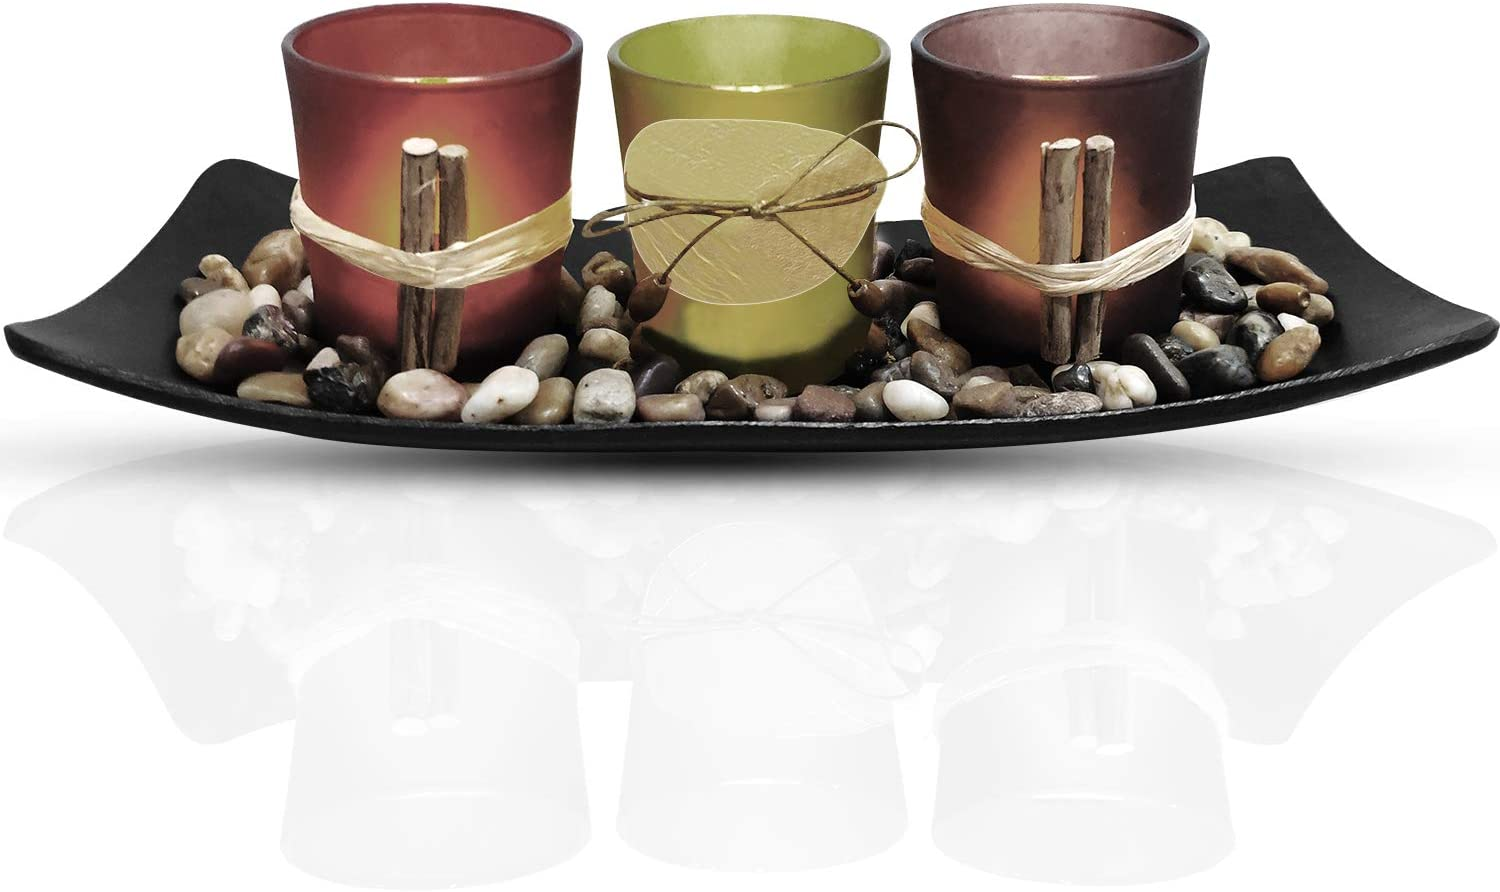 Urban Deco Candle Holders Set of 3 Decorative Vintage Glass Candles Holder - Black Tray and Rustic Stones for Wedding Living Room, Farmhouse, Table Centerpieces.